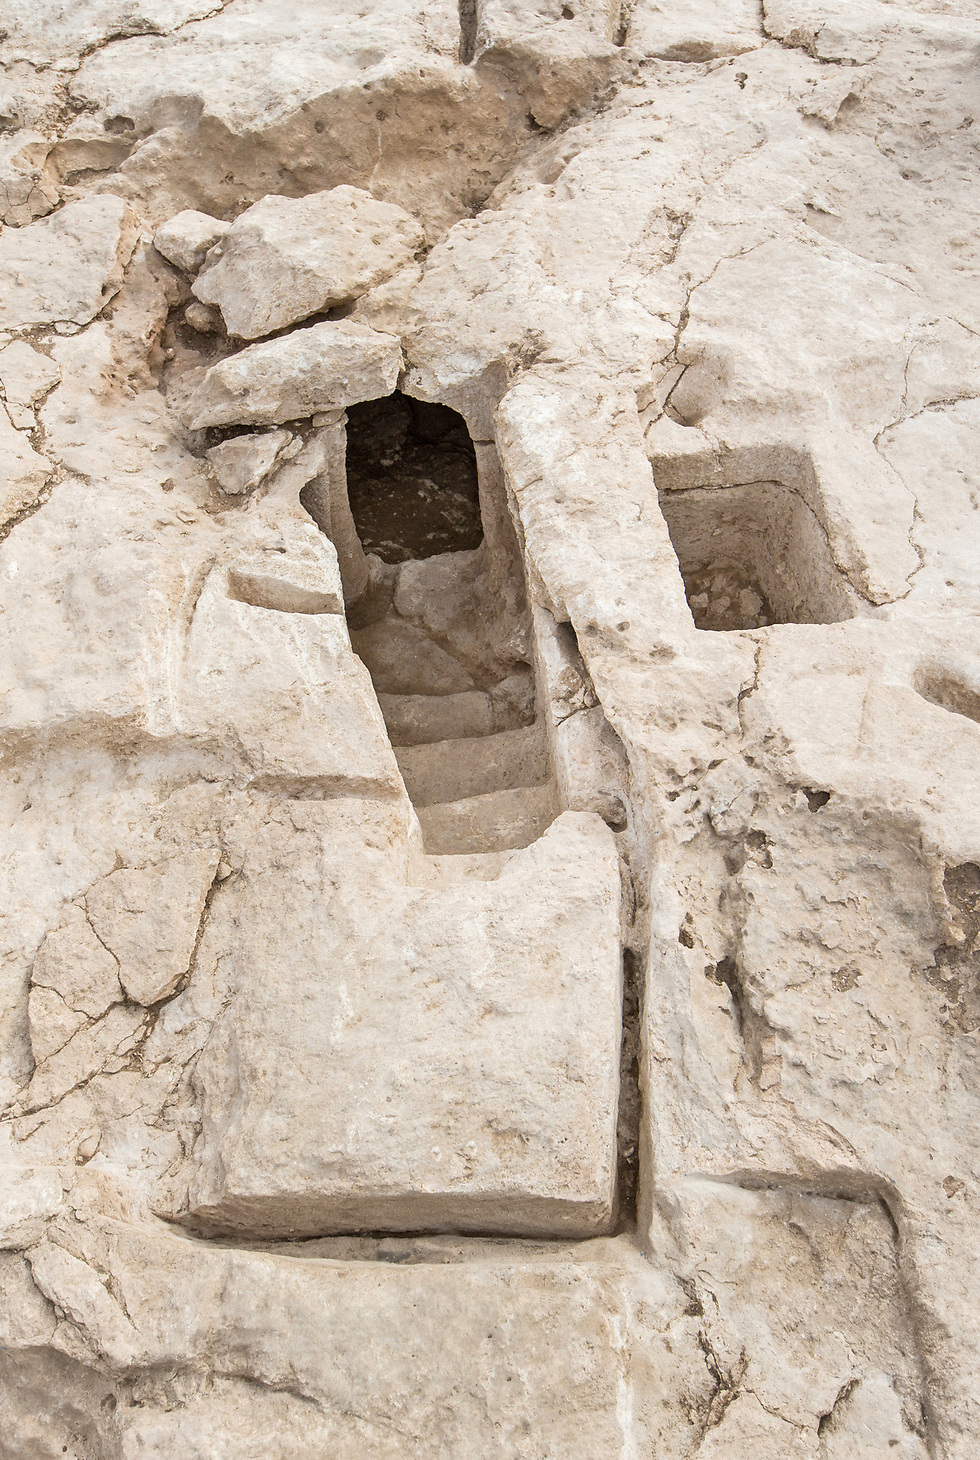 ritual baths discovered. (Photo: Assaf Peretz, courtesy of the IAA)